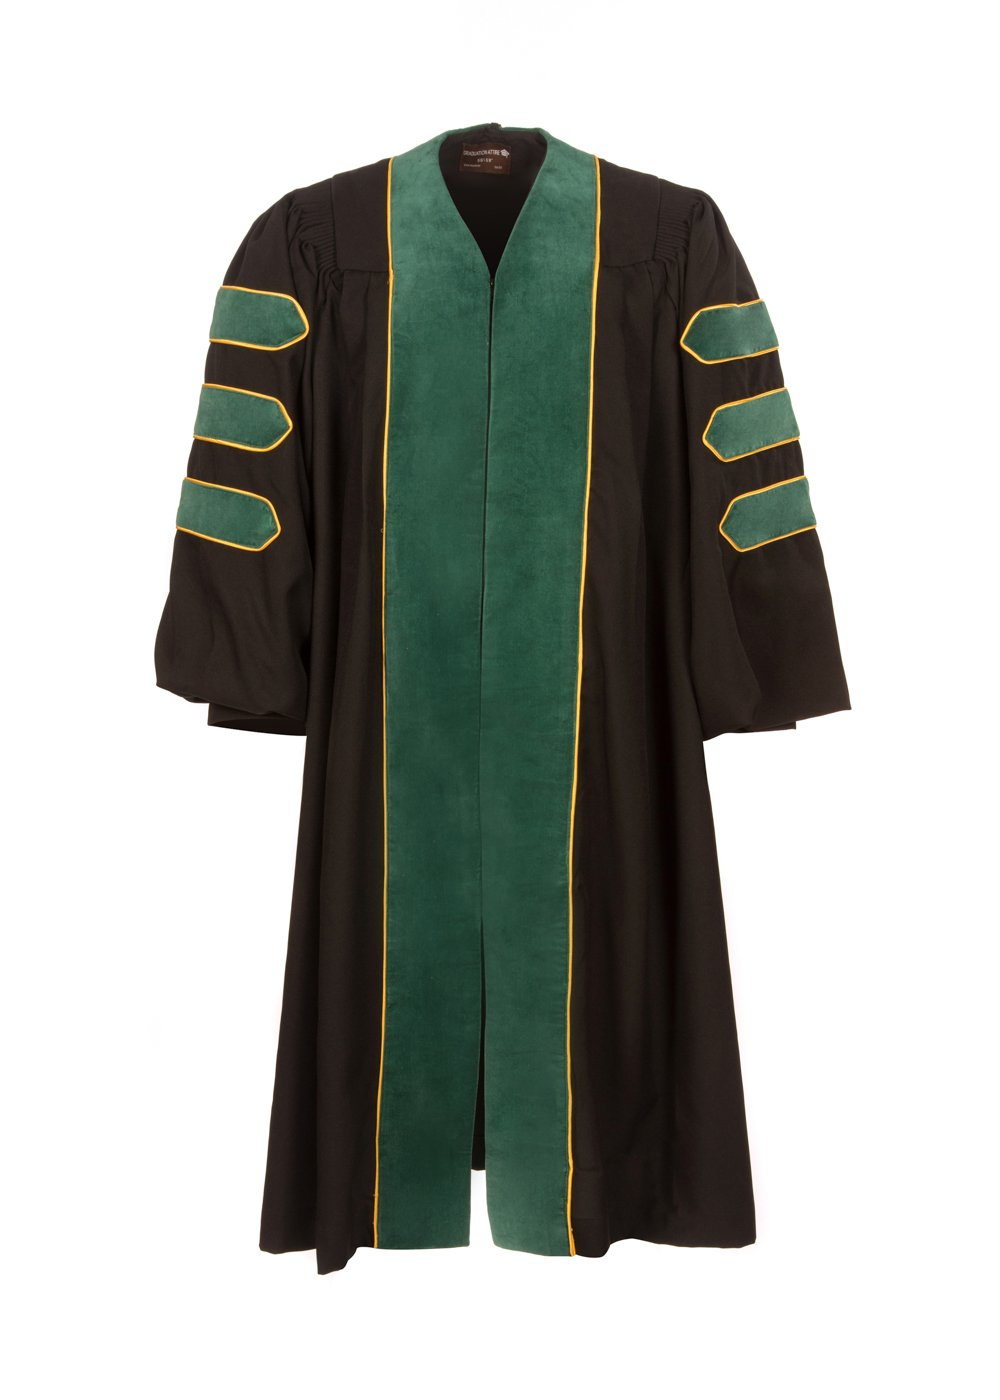 American Doctoral Gown (5'9'' - 5'11'', Black with Forrest Green velvet + gold piping)